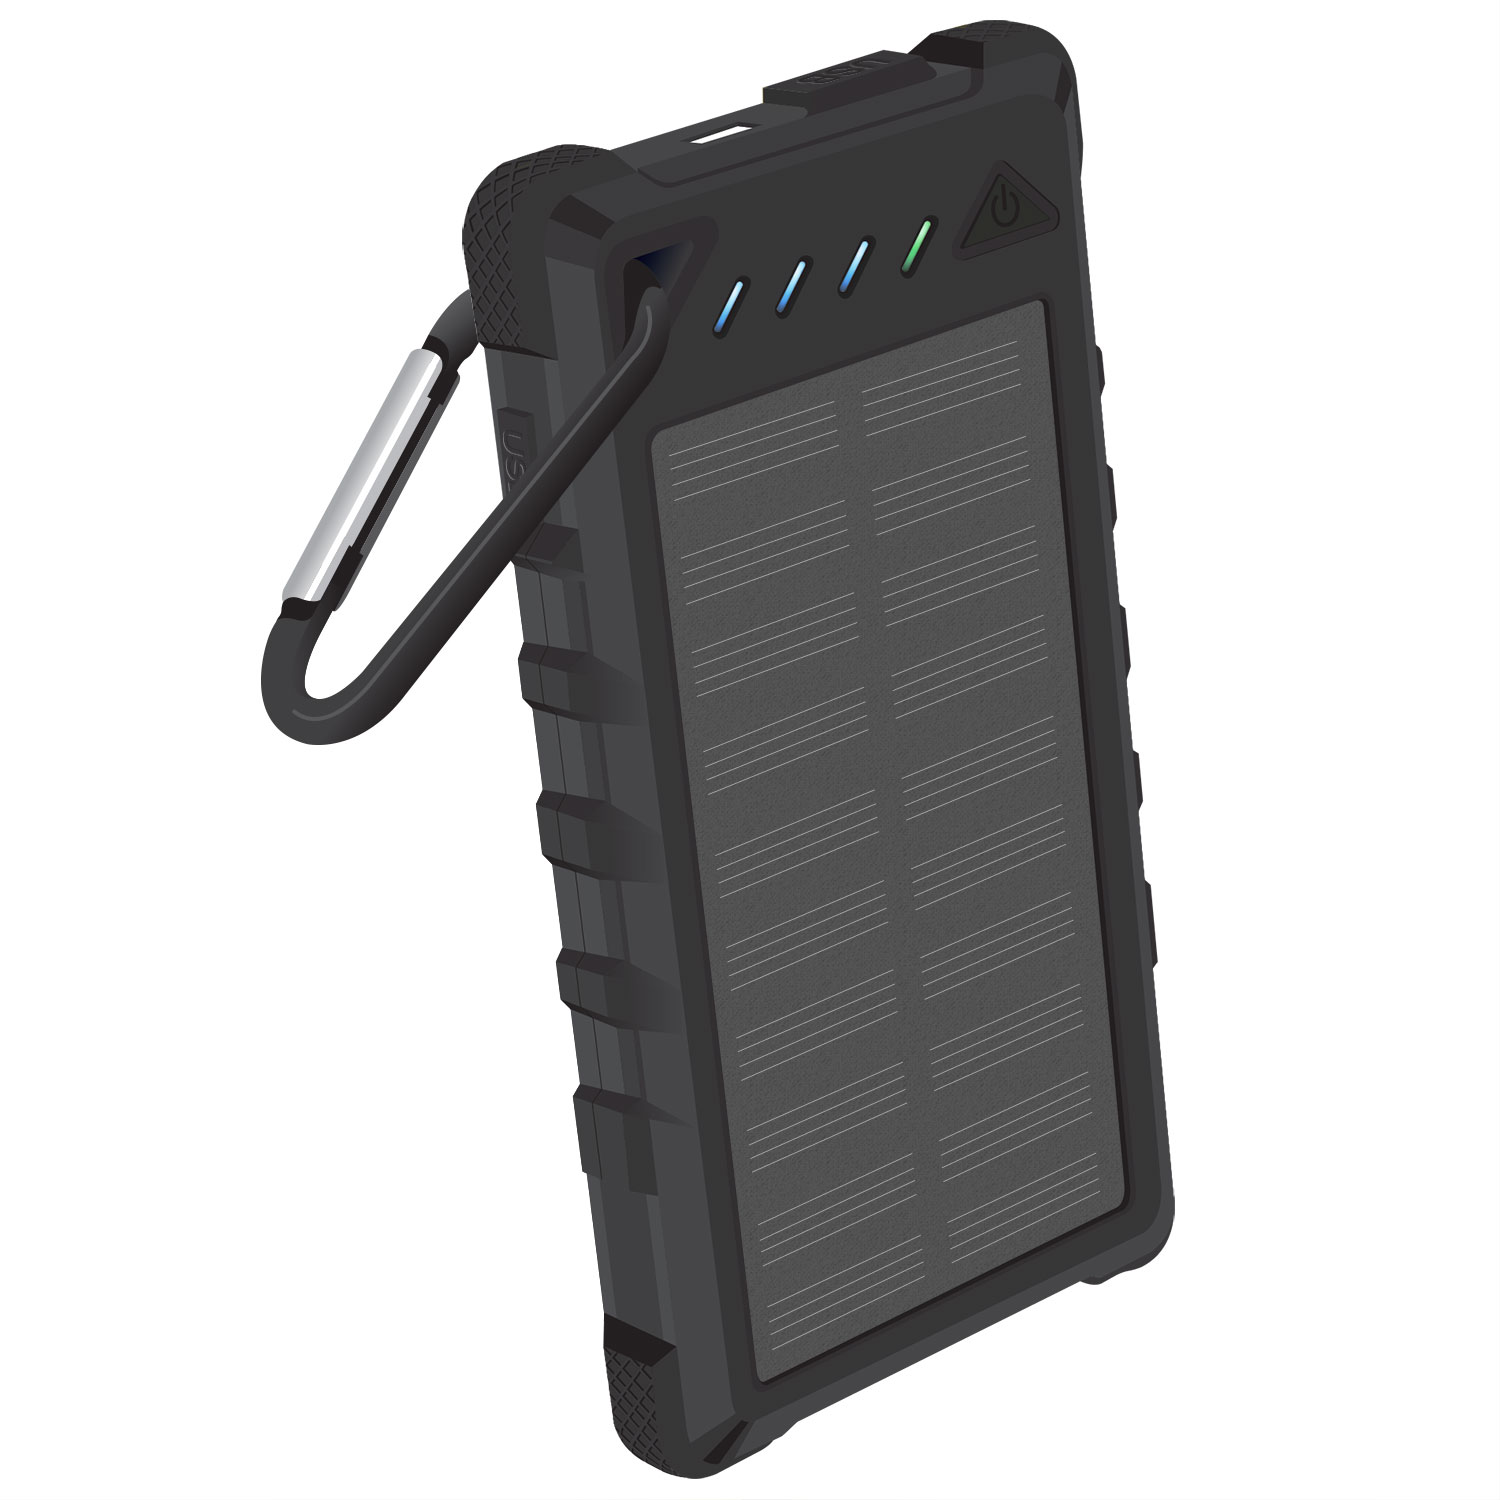 LG K10 Solar Powered Portable PowerBank Black